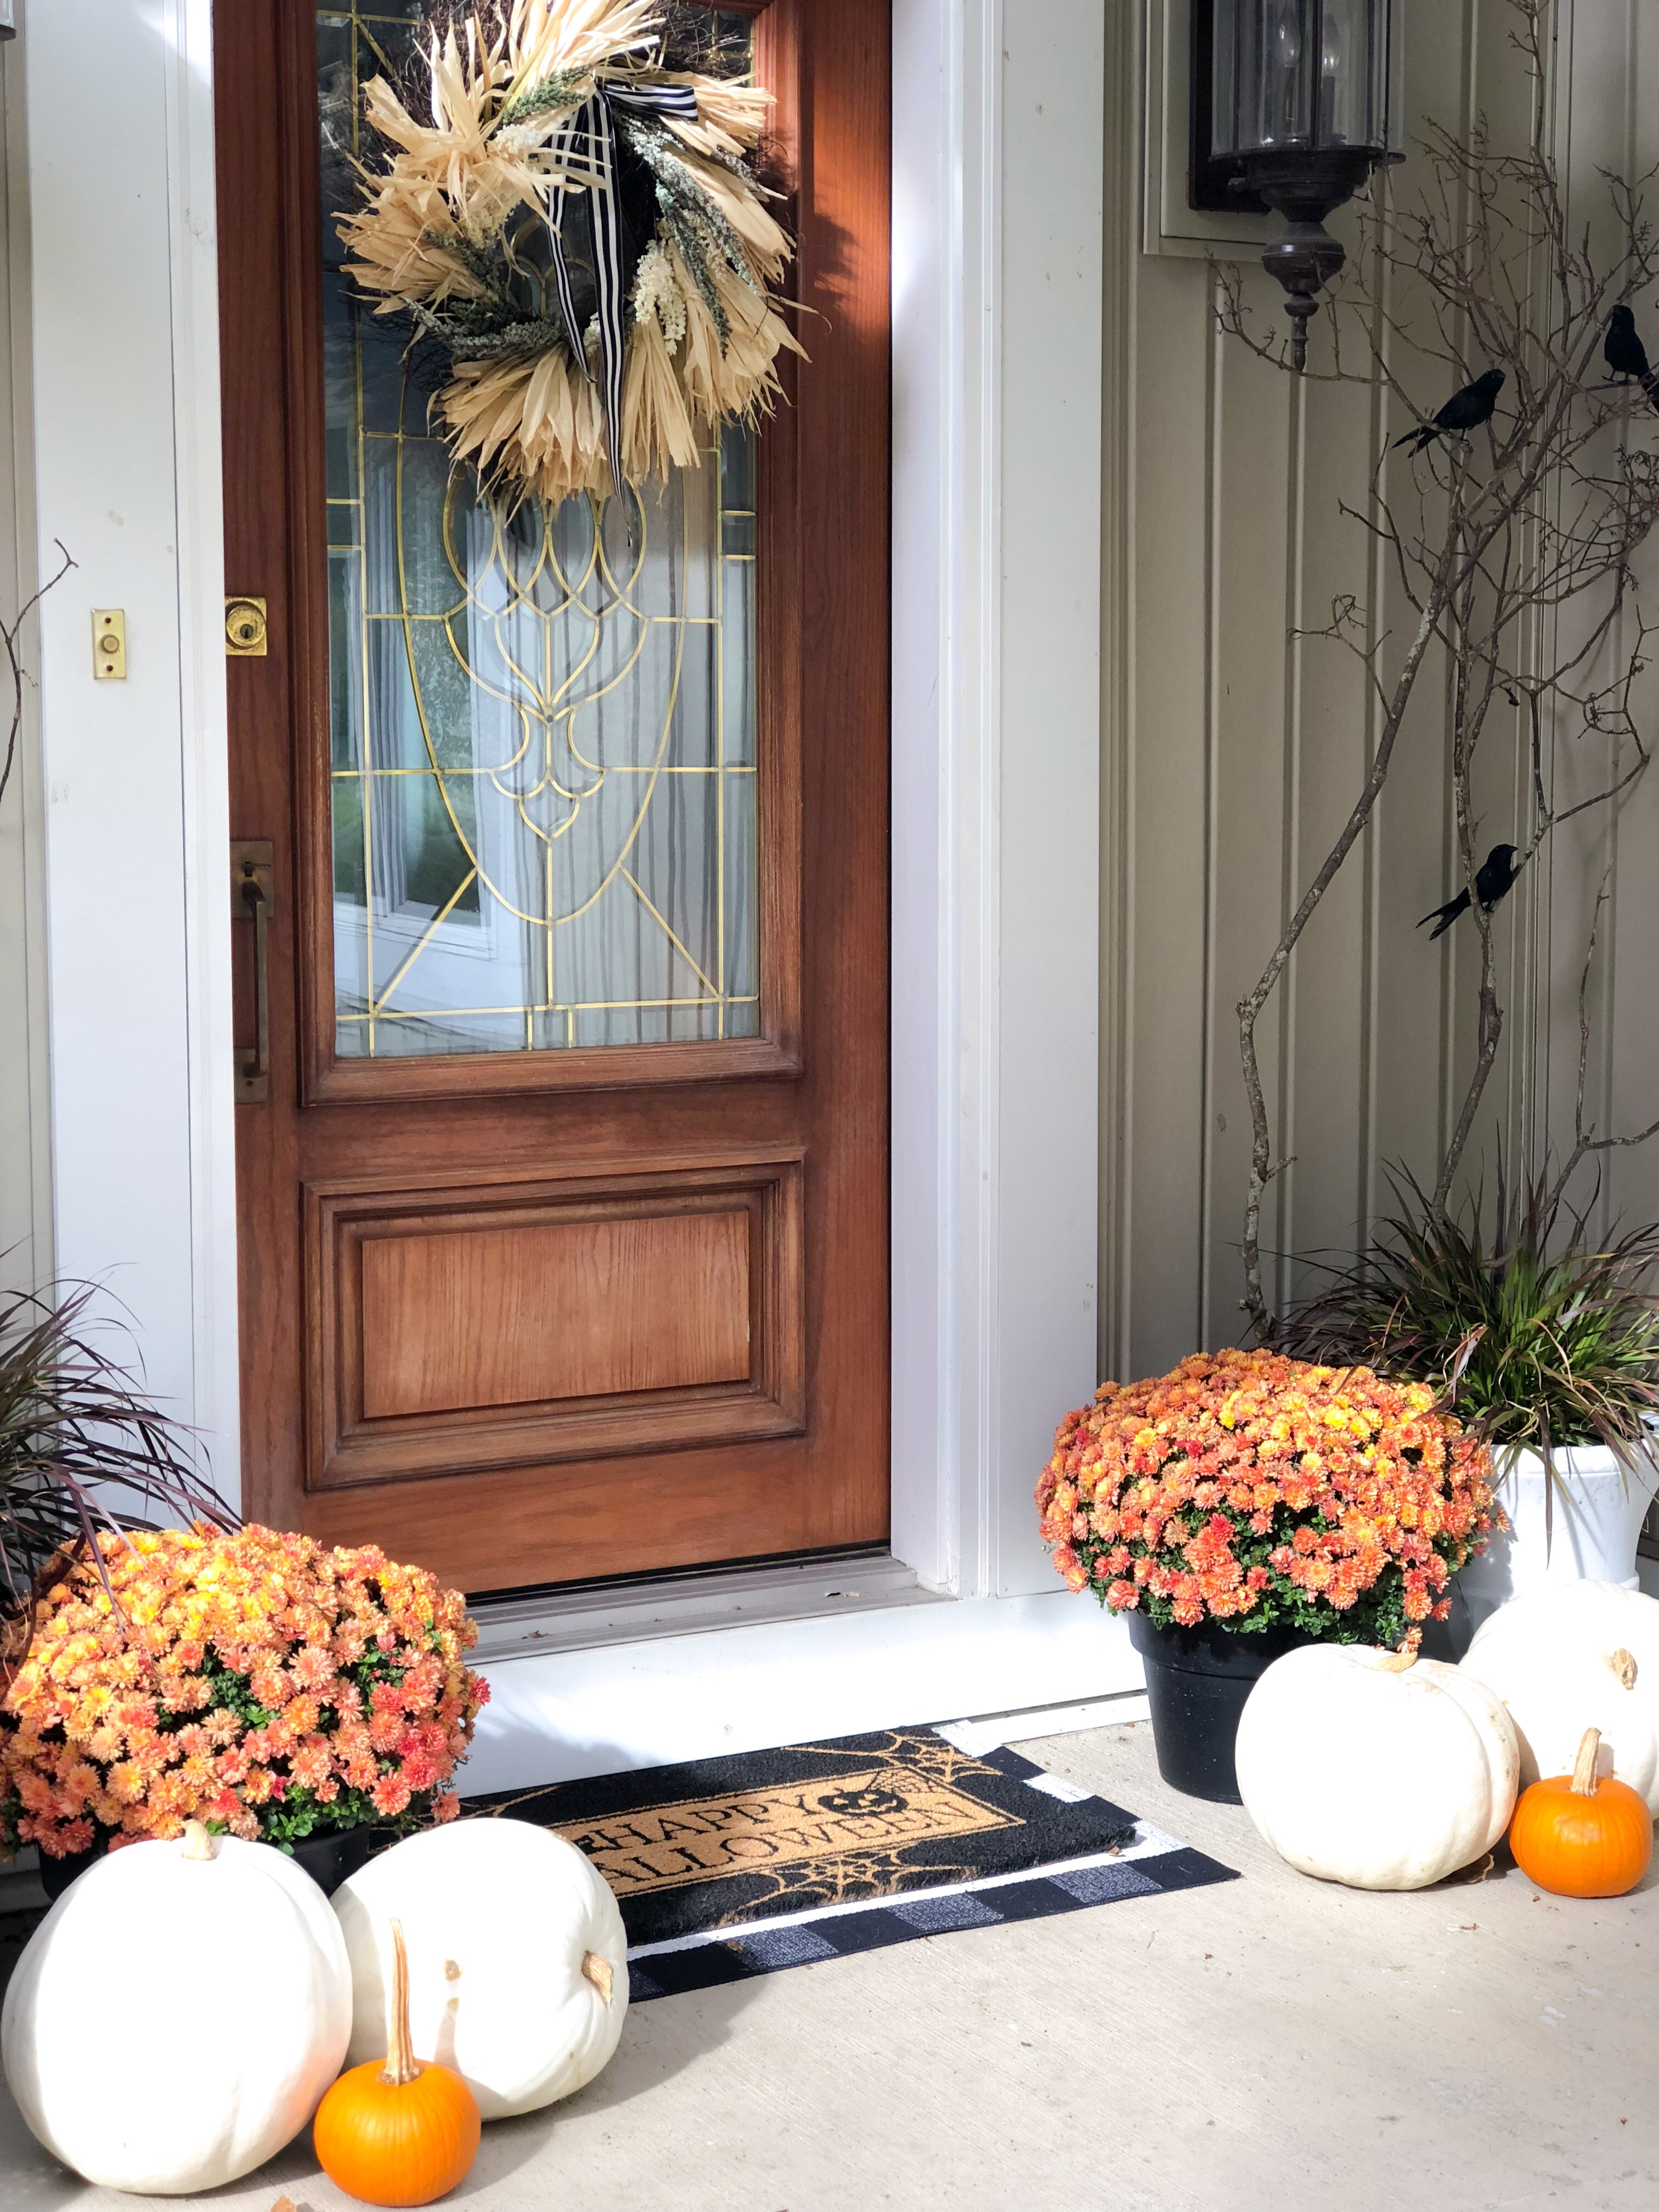 Orange Mums with white pumpkins, straw wreath with black and white ribbon, black and white buffalo check doormat and tree branches with black crows